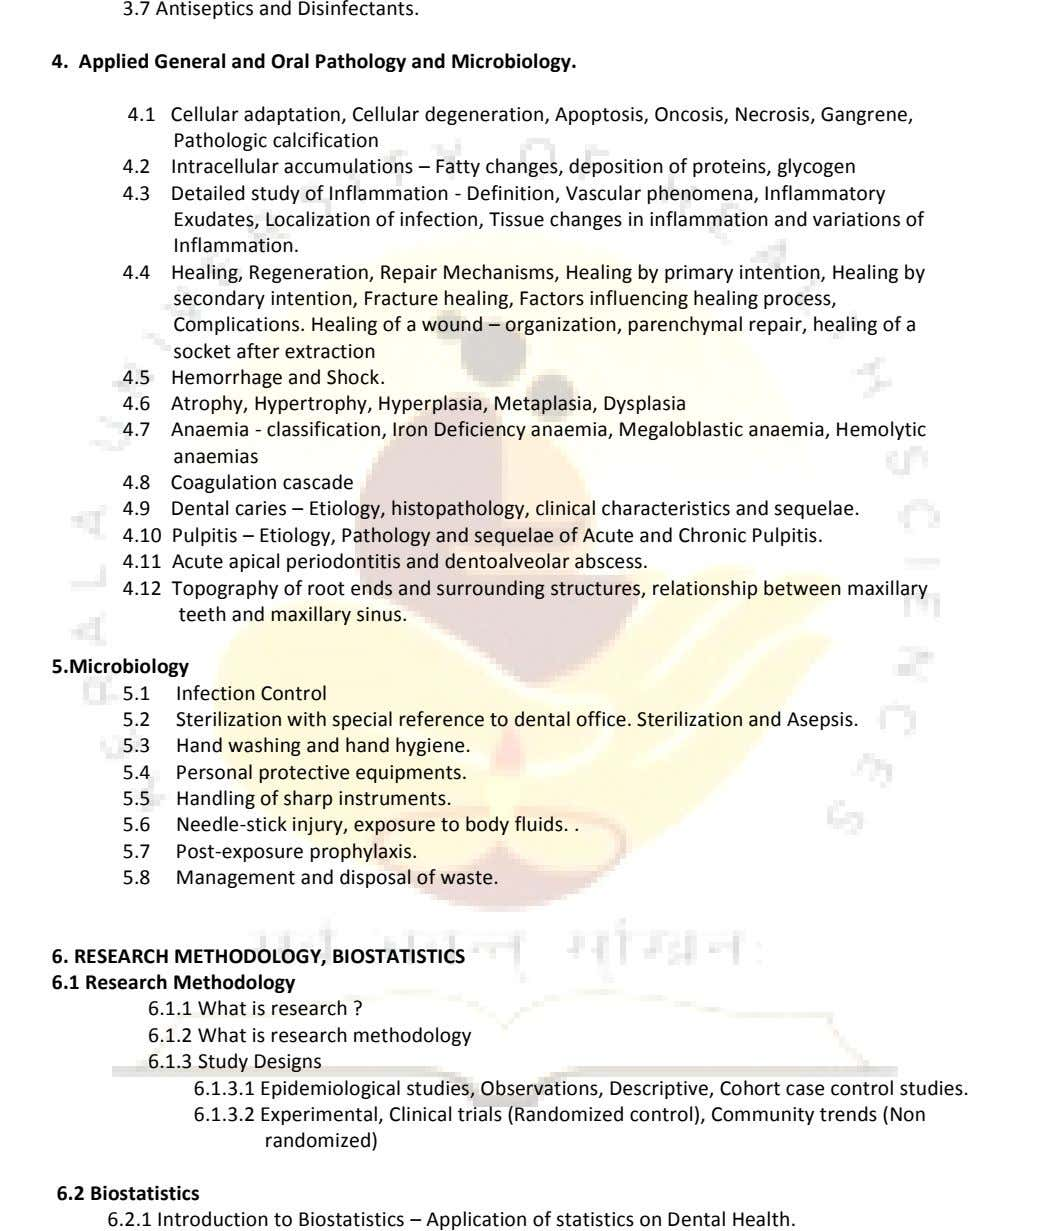 3.7 Antiseptics and Disinfectants. 4. Applied General and Oral Pathology and Microbiology. 4.1 Cellular adaptation, Cellular